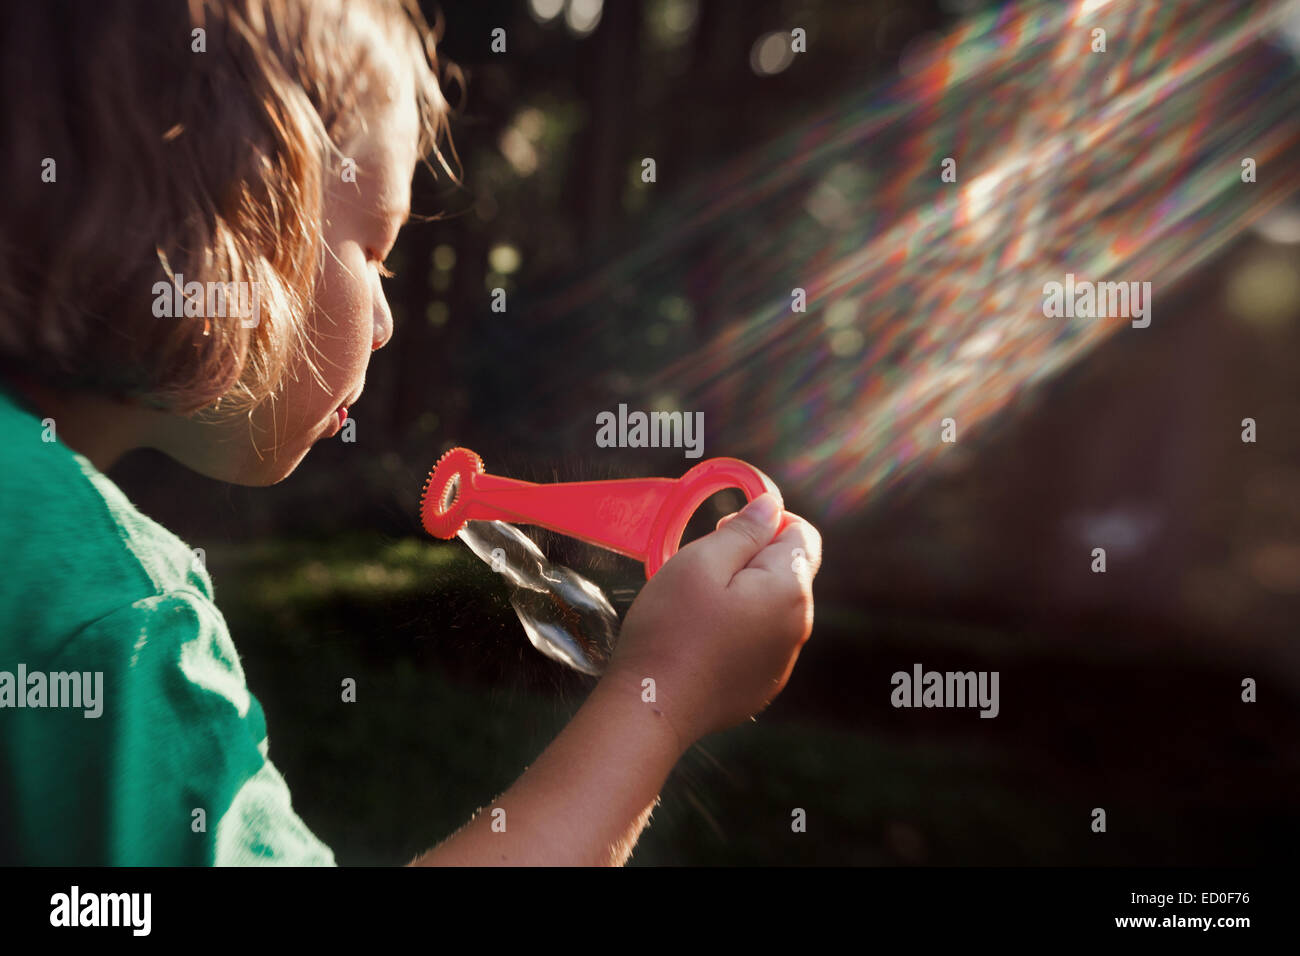 Girl (8-9) blowing bubbles - Stock Image